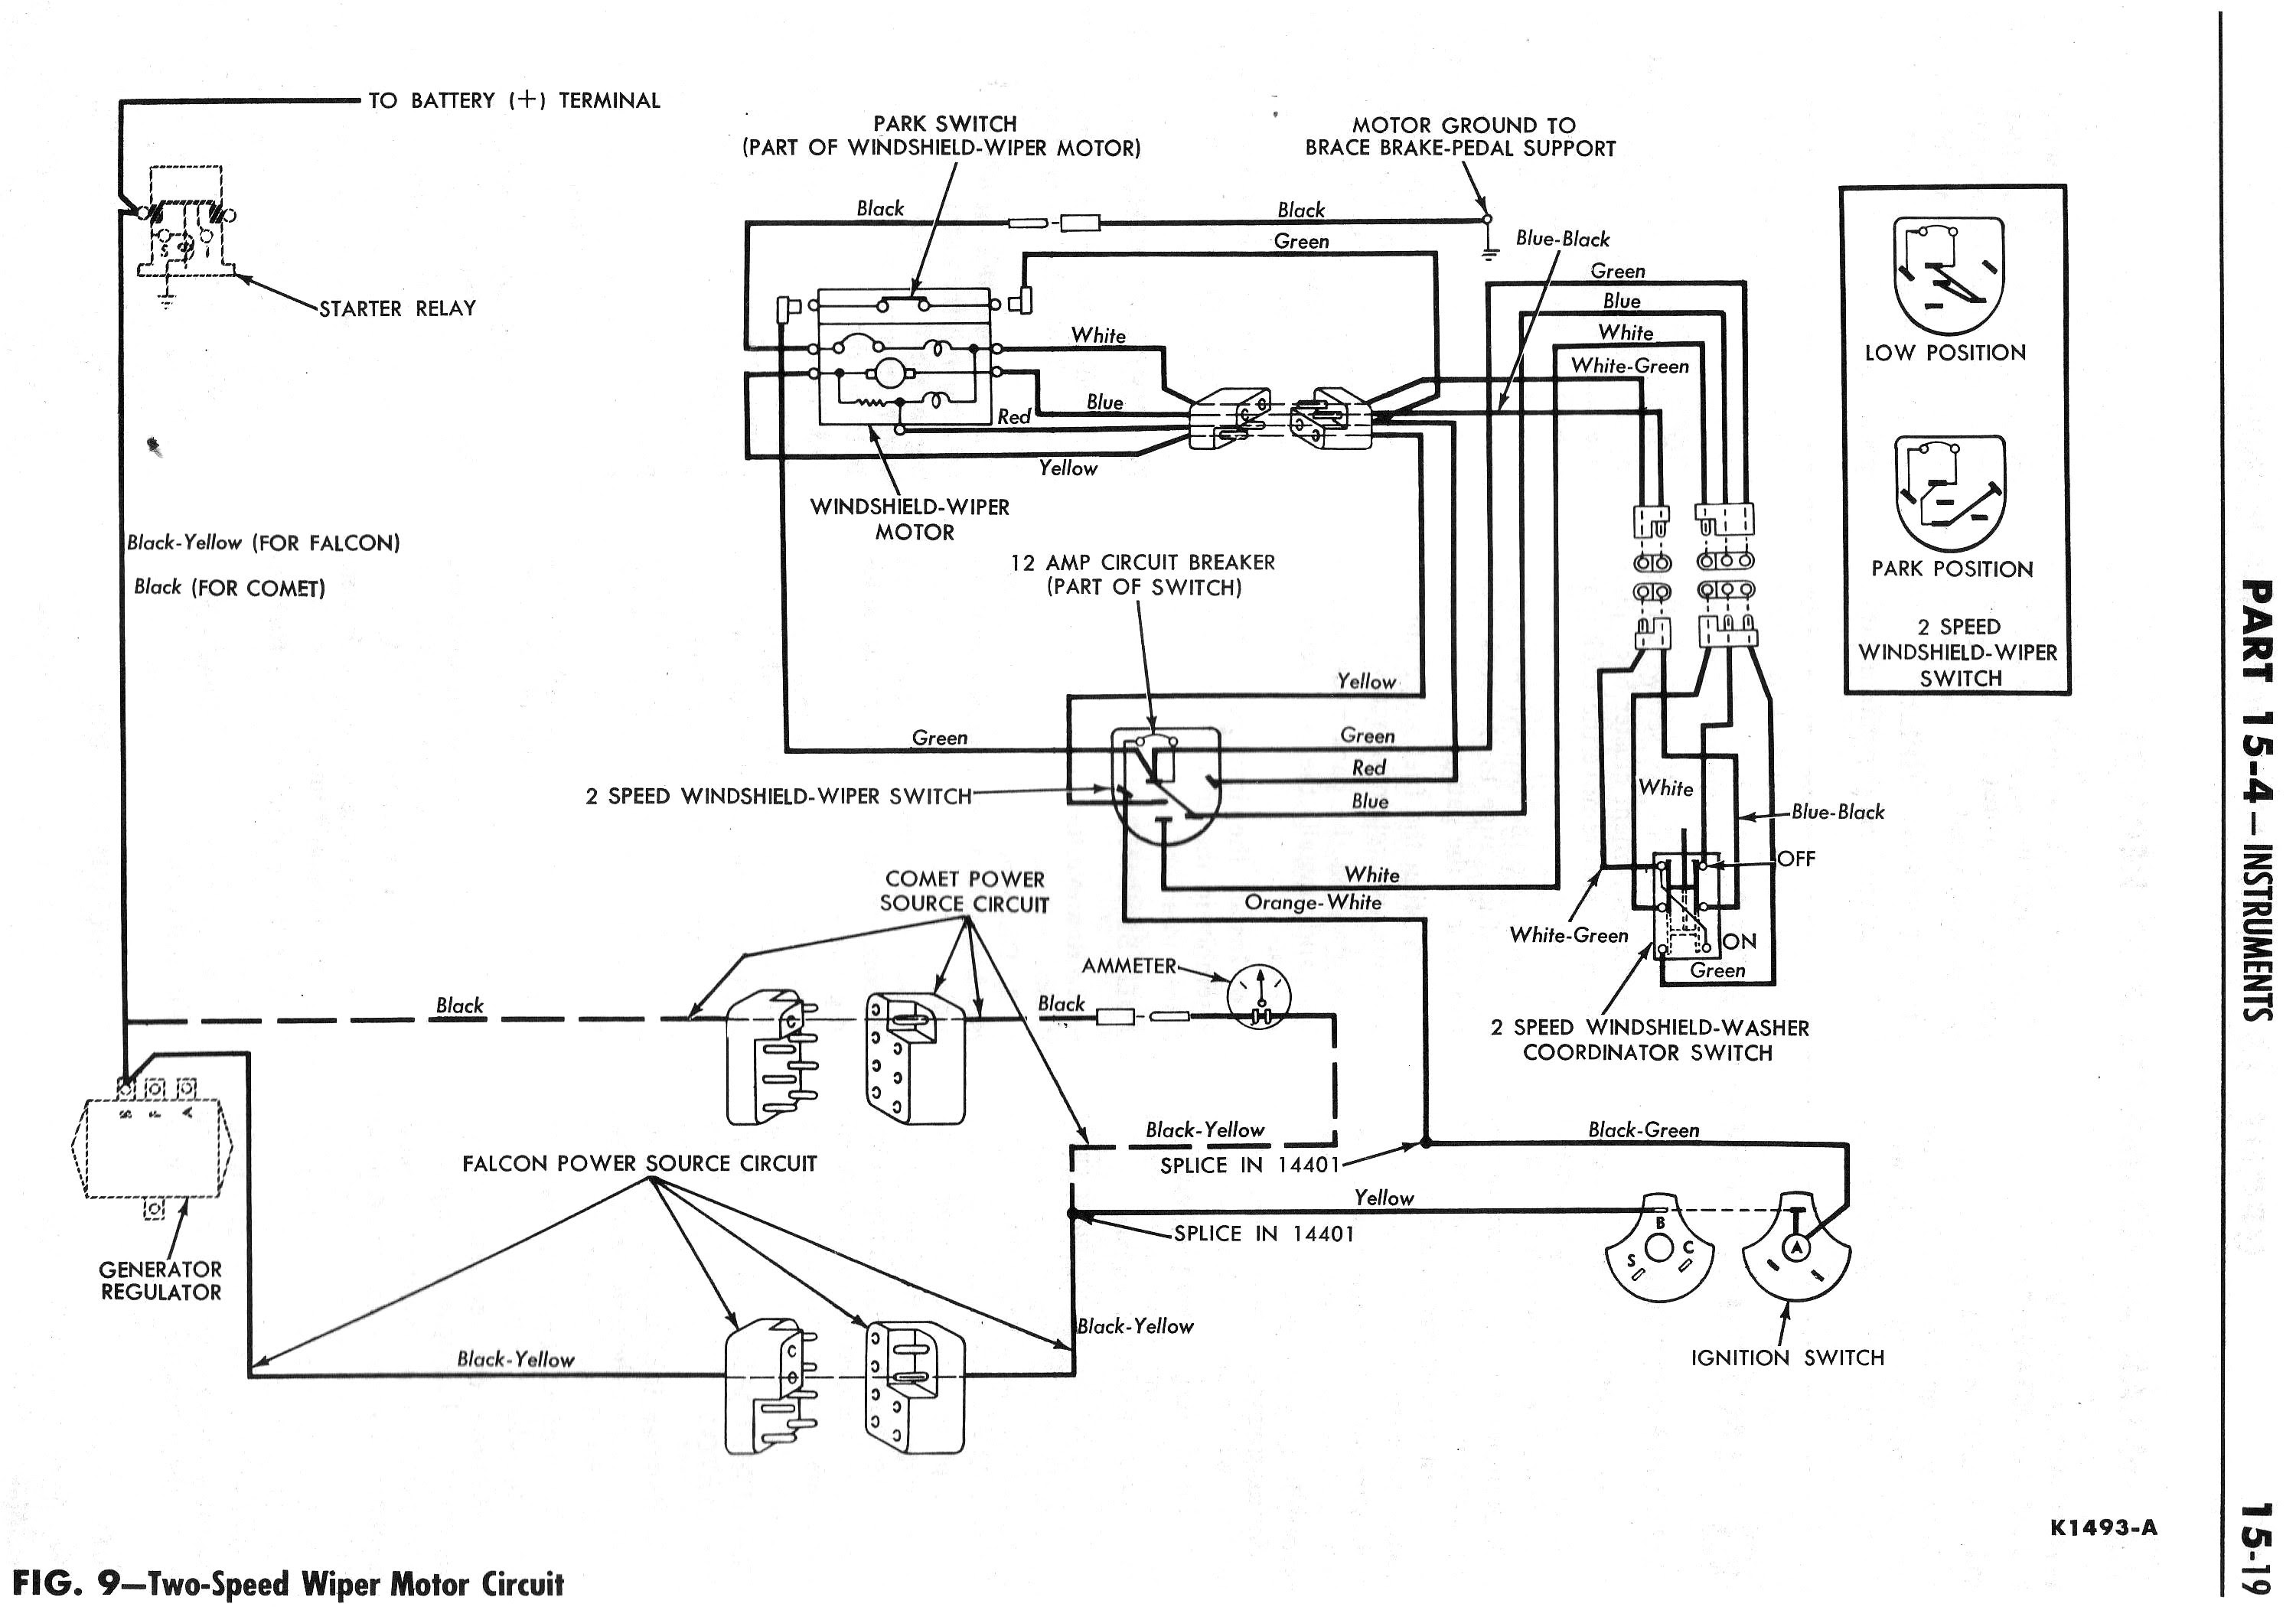 Wiring Diagram PDF: 00 Navigator Air Suspension Wiring Diagram